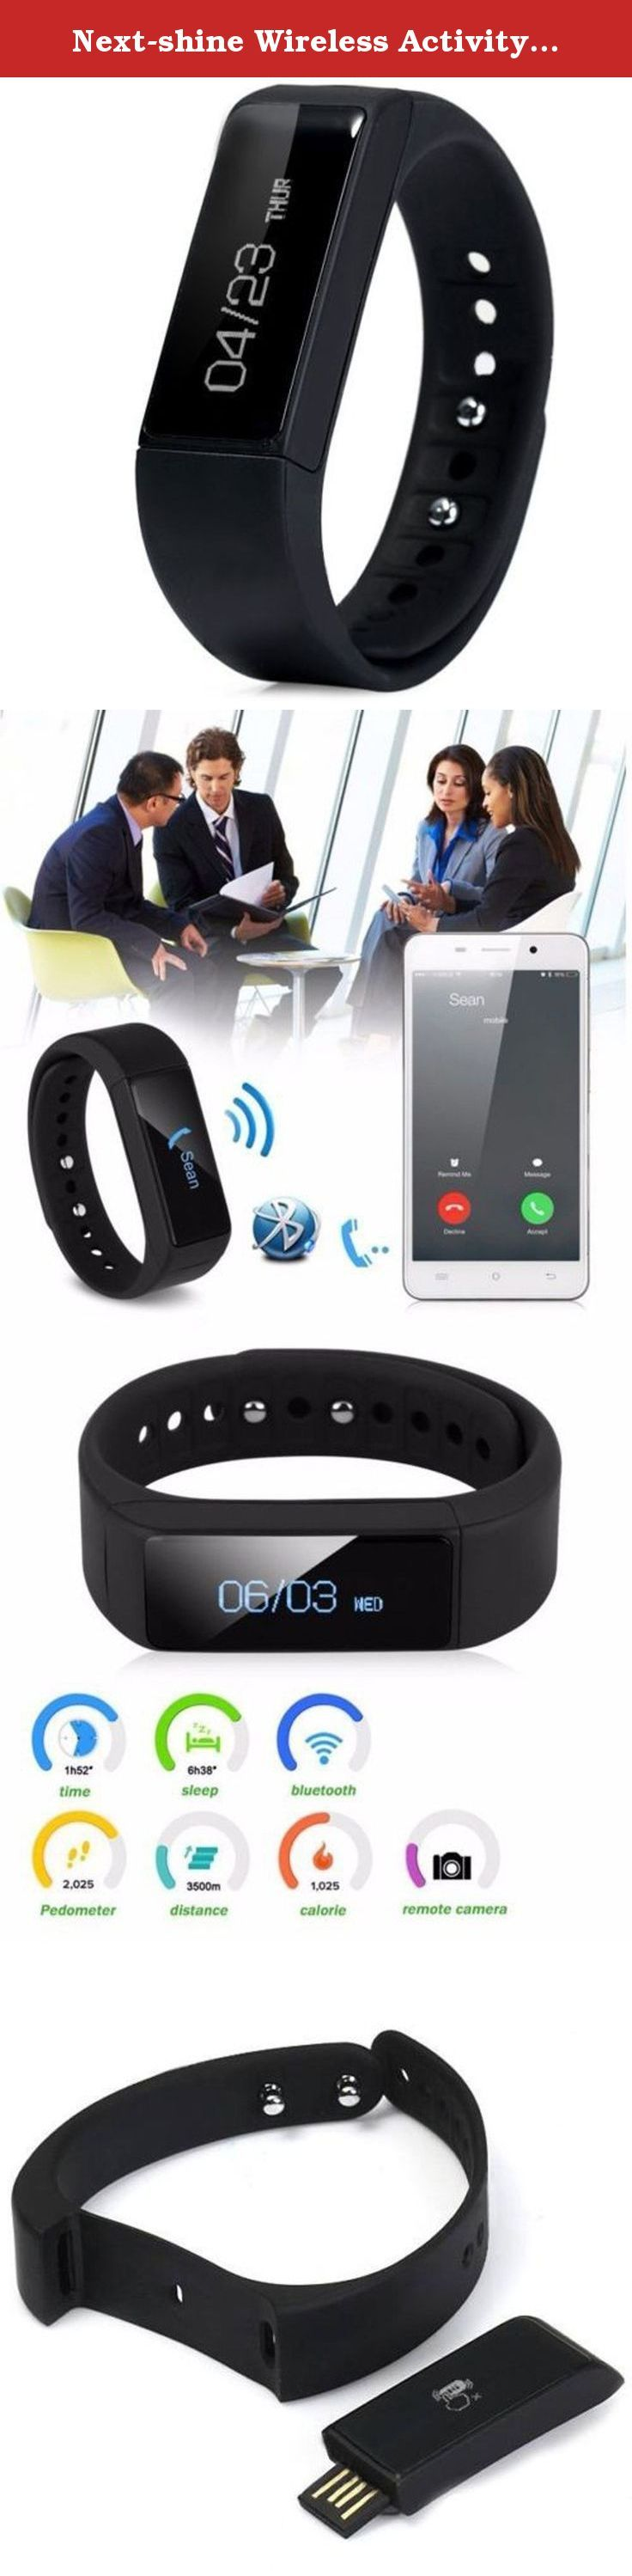 Next-shine Wireless Activity Fitness Tracker Smart Band Wristband Sleep Monitor,Black. Next-shine fitness tracker Activity Partner When you wear the band to walk or sport,you can track your steps,distance,kalories to adjust your exercise. Sleep Monitor You can monitor the quality of your sleep to adjust your schedules. Call & SMS Notification Worry about missing any call or message? You can see the call ID when someone call you or get the content when receiving message.So,you would not…